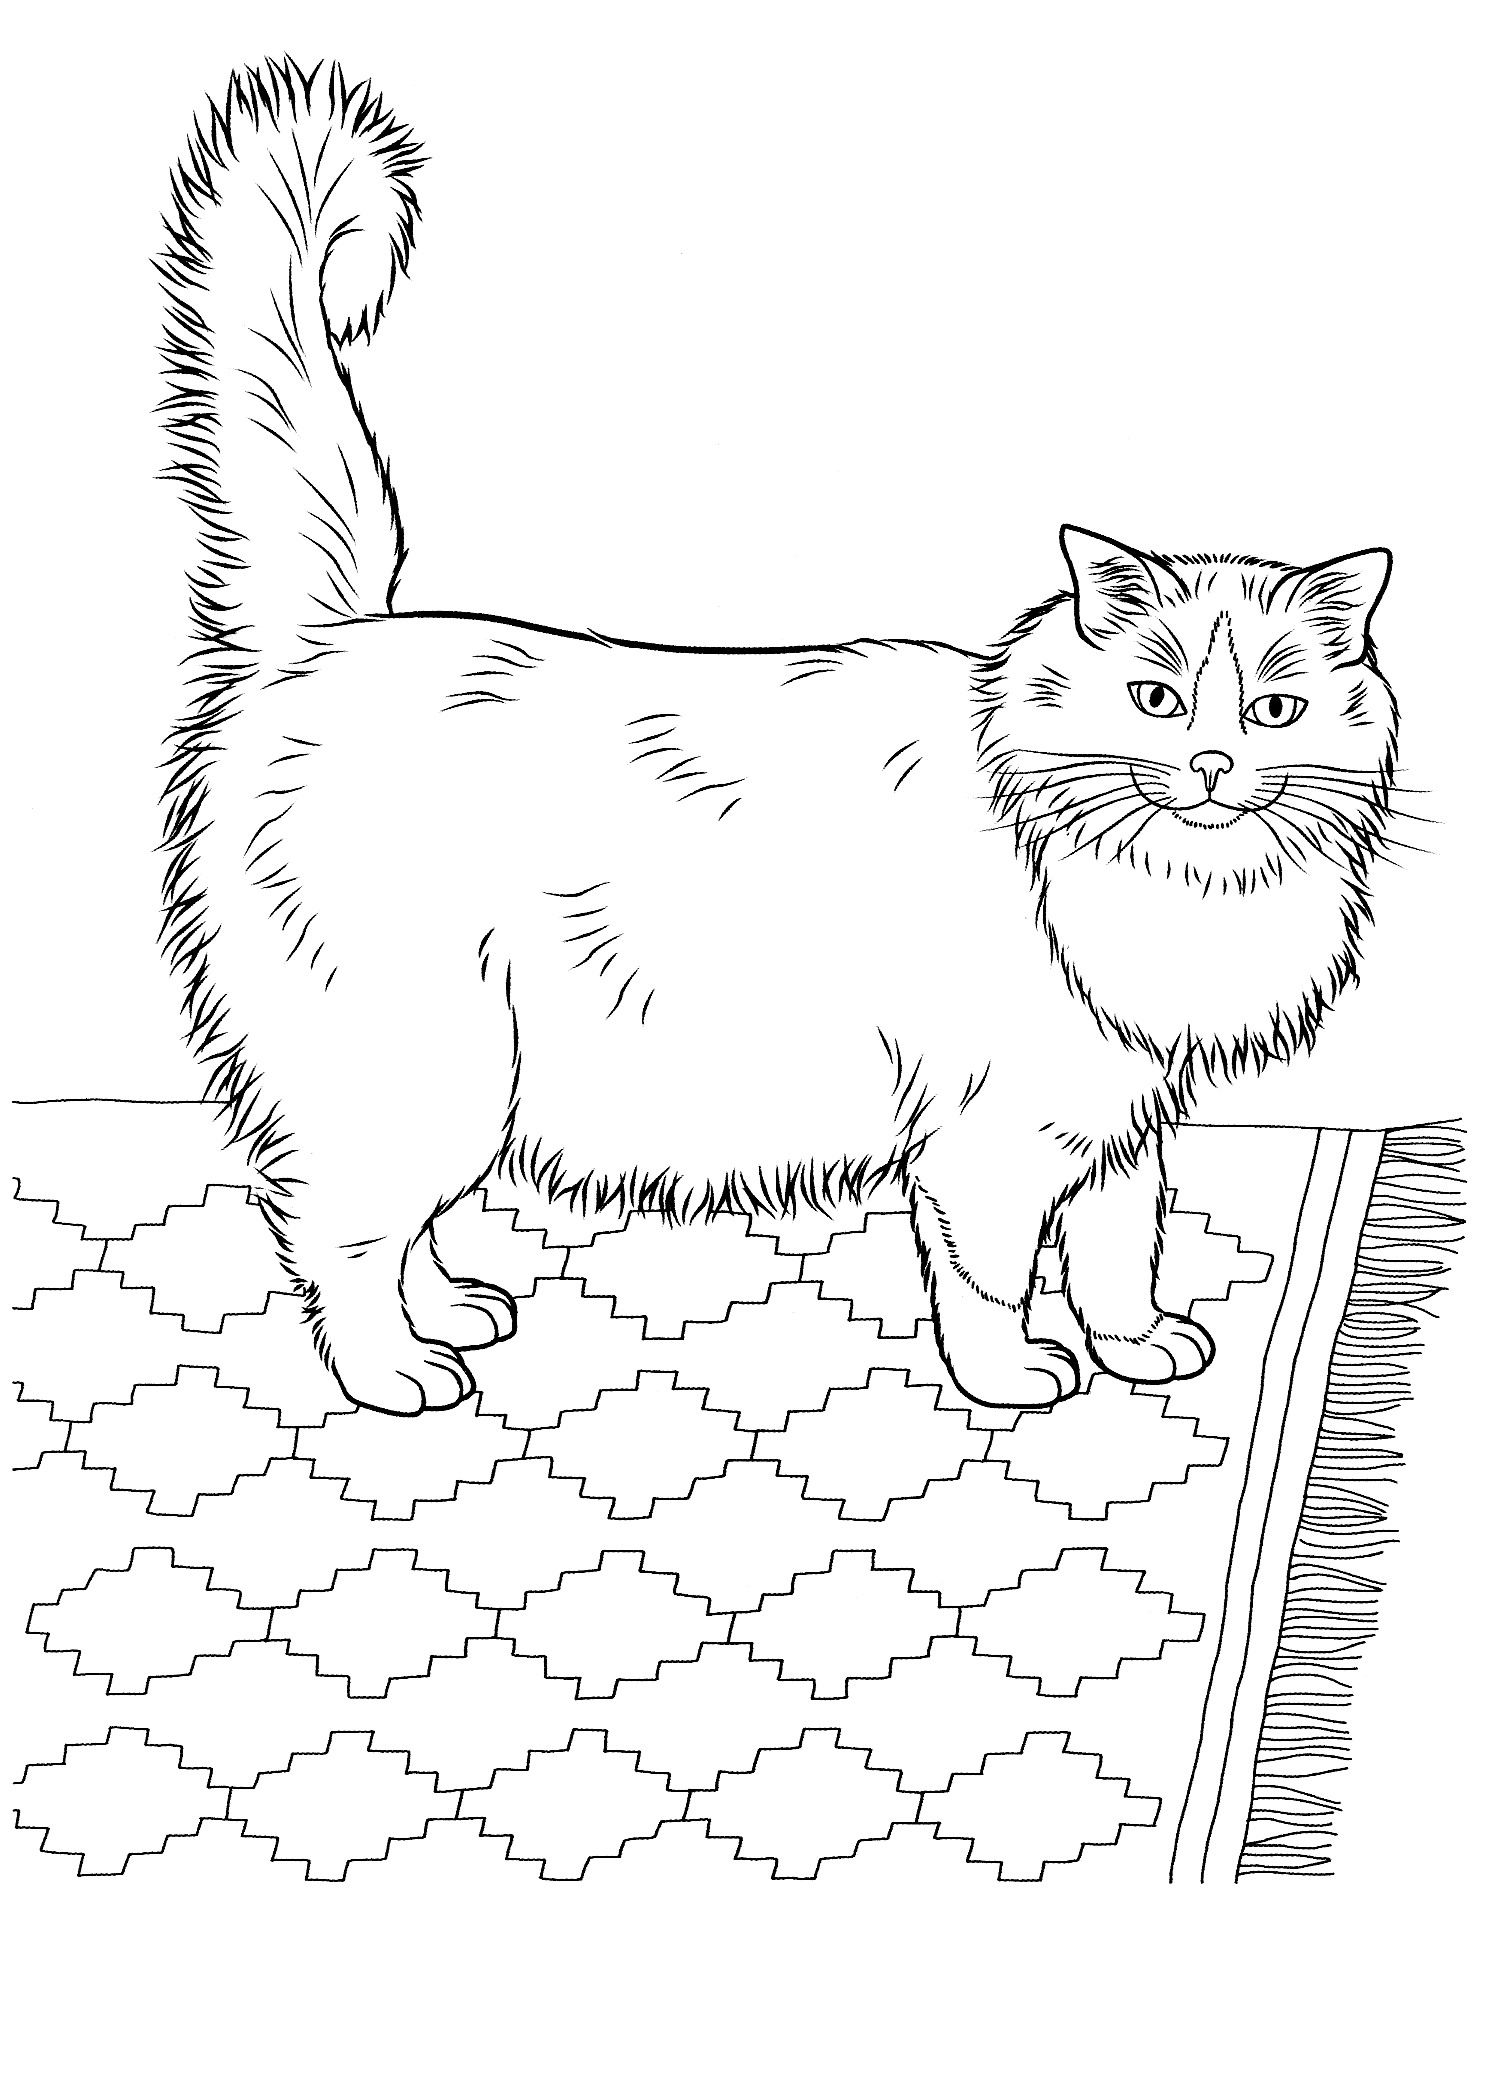 Cats 17 Cats Coloring Pages For Teens And Adults Cat Coloring Book